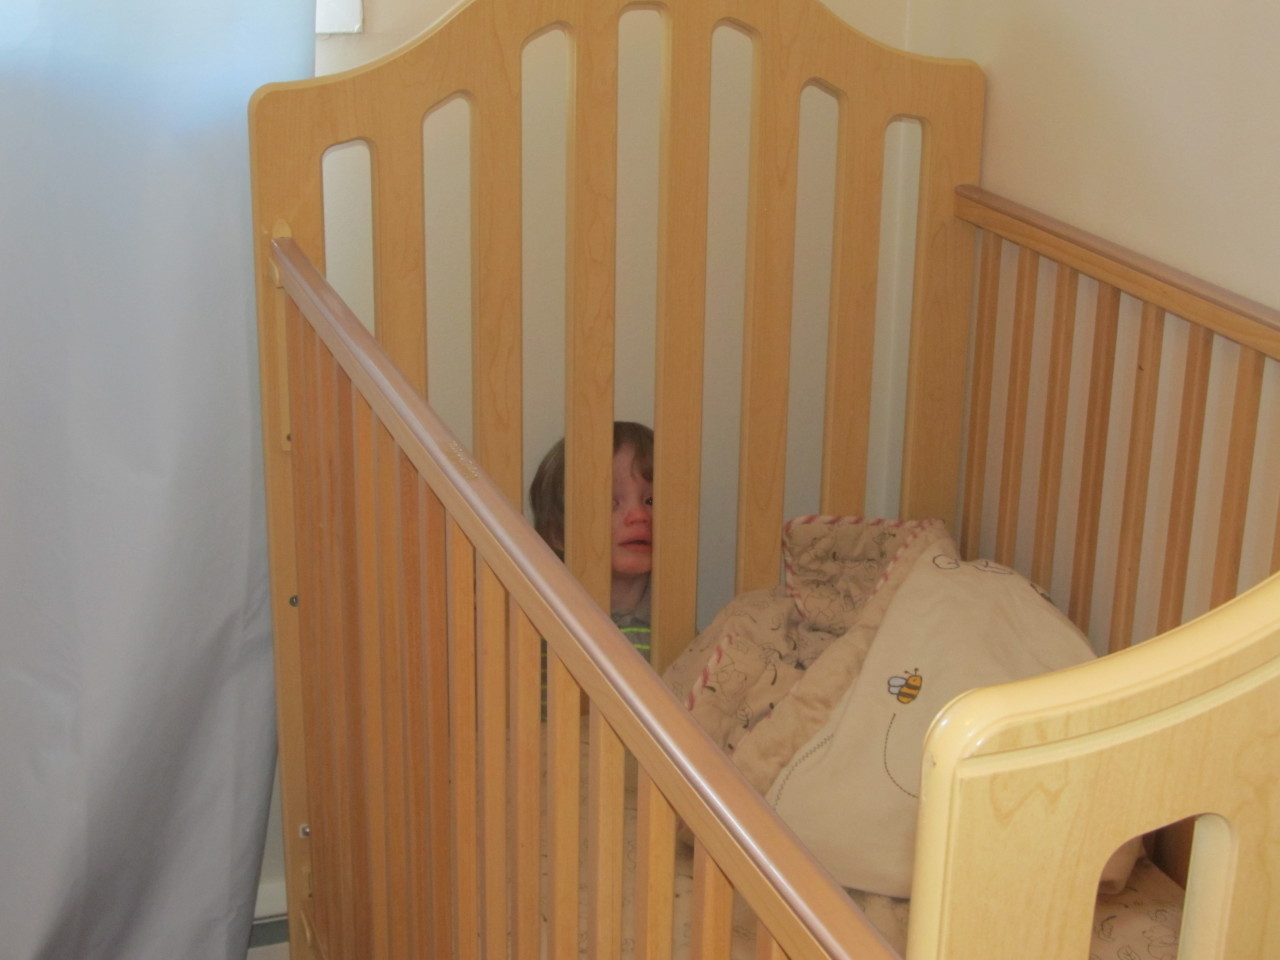 Not quite sure how he got between the crib and the wall, but he sure wasn't happy about it.